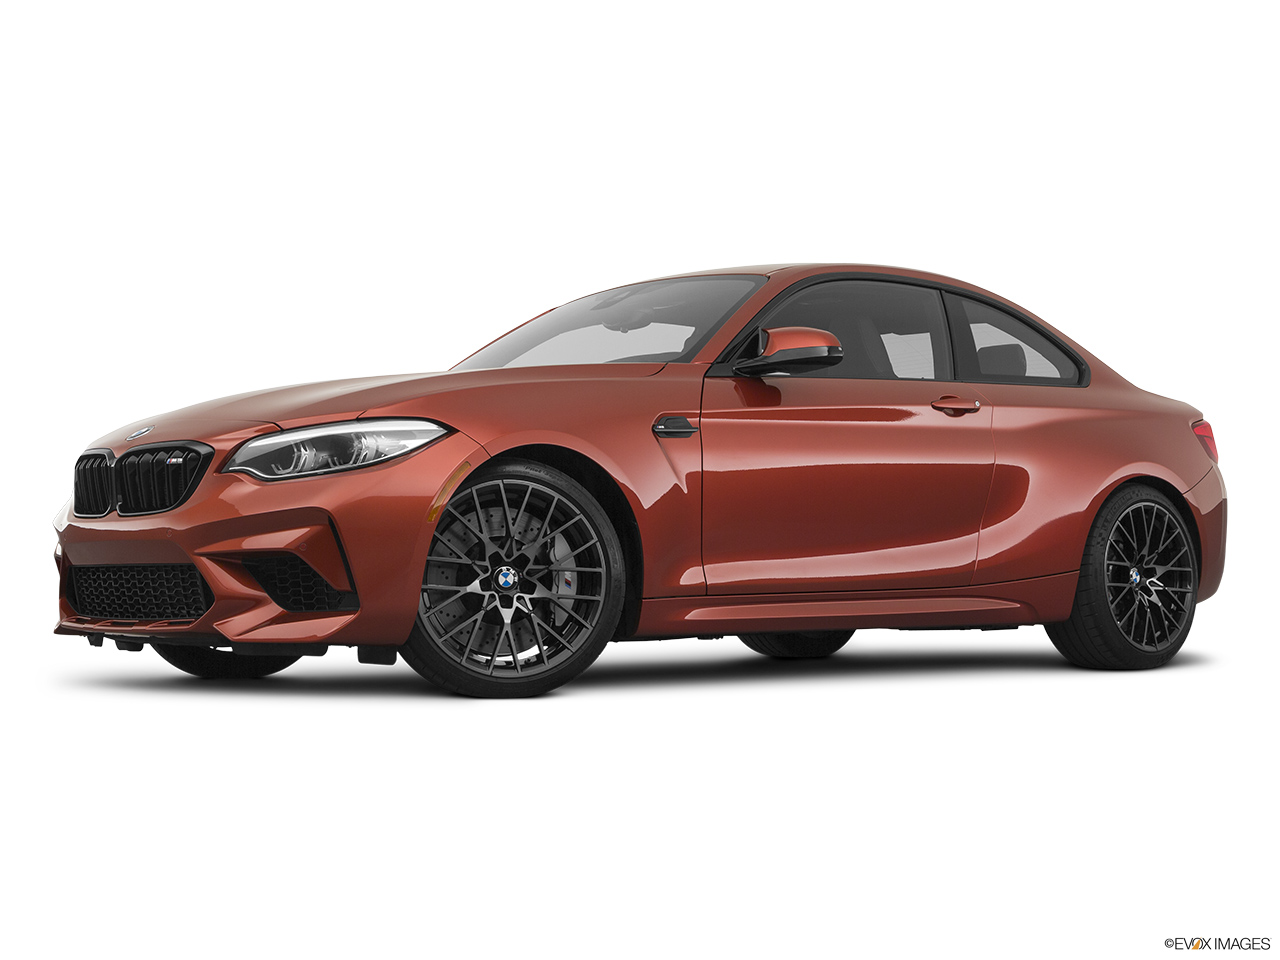 2020 BMW M2 Competition Low/wide front 5/8.